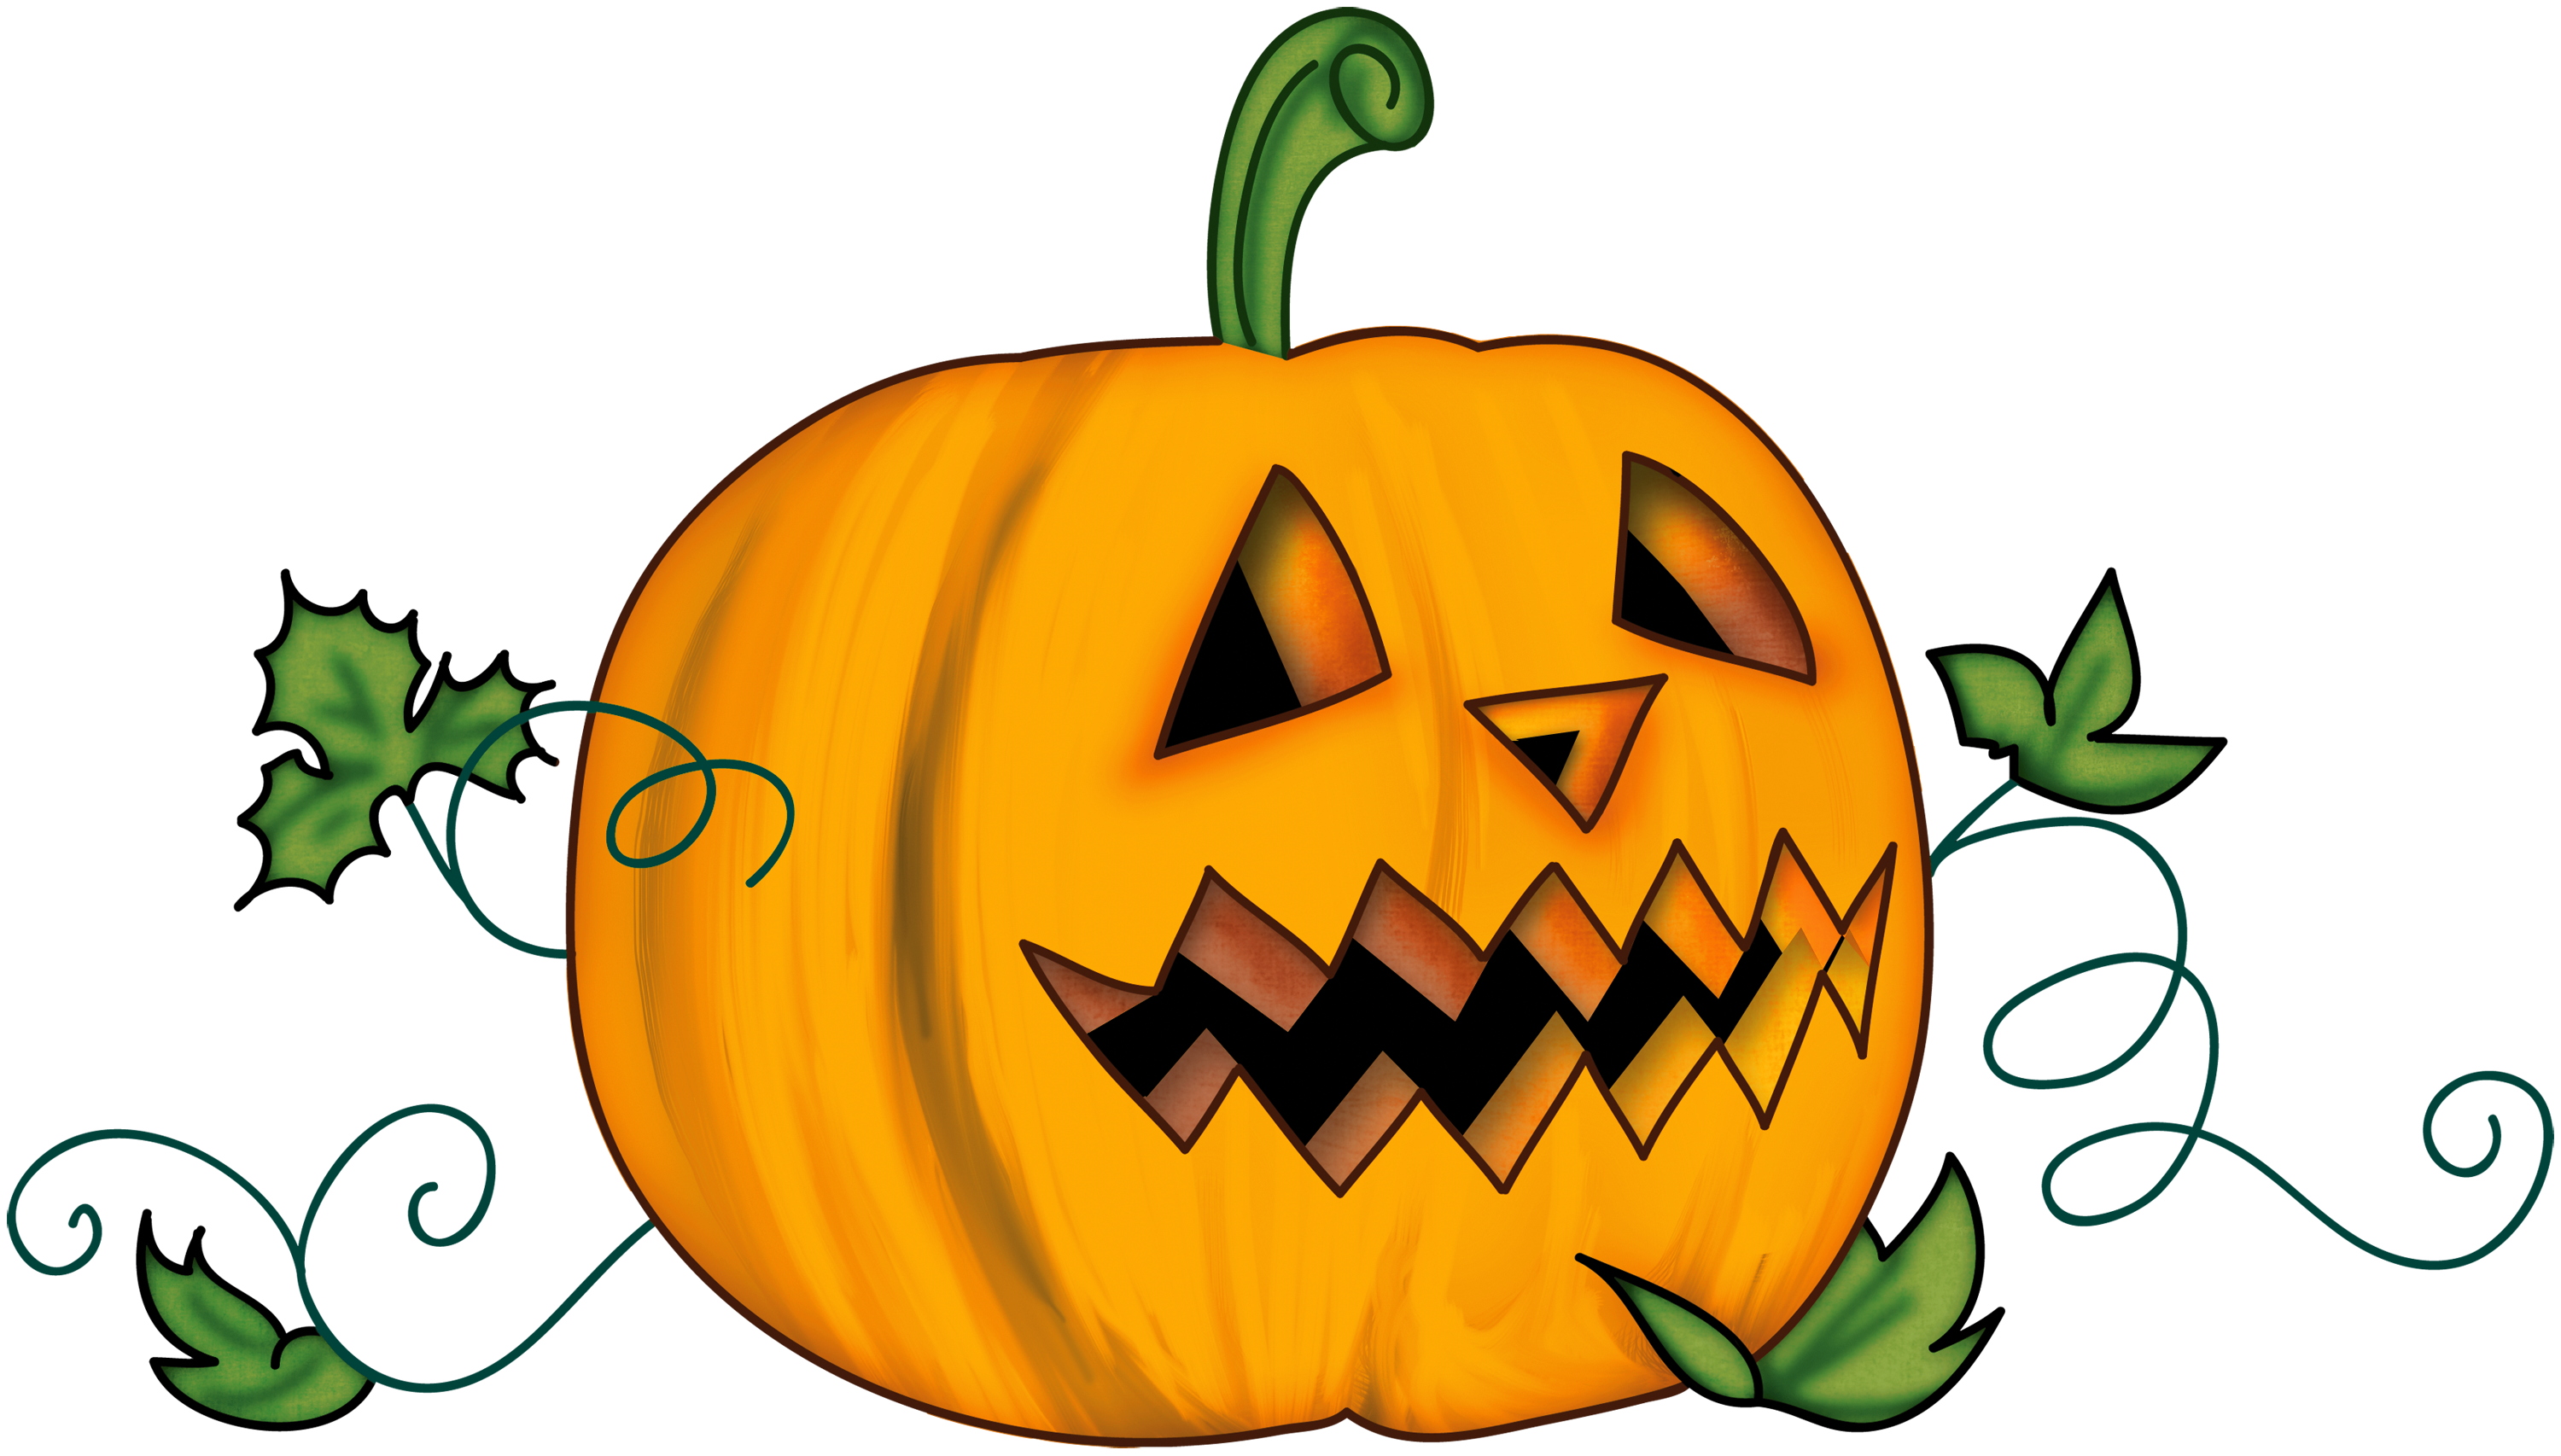 All saints pumpkin carving clipart picture transparent library Free Pumpkin Clipart at GetDrawings.com | Free for personal use Free ... picture transparent library